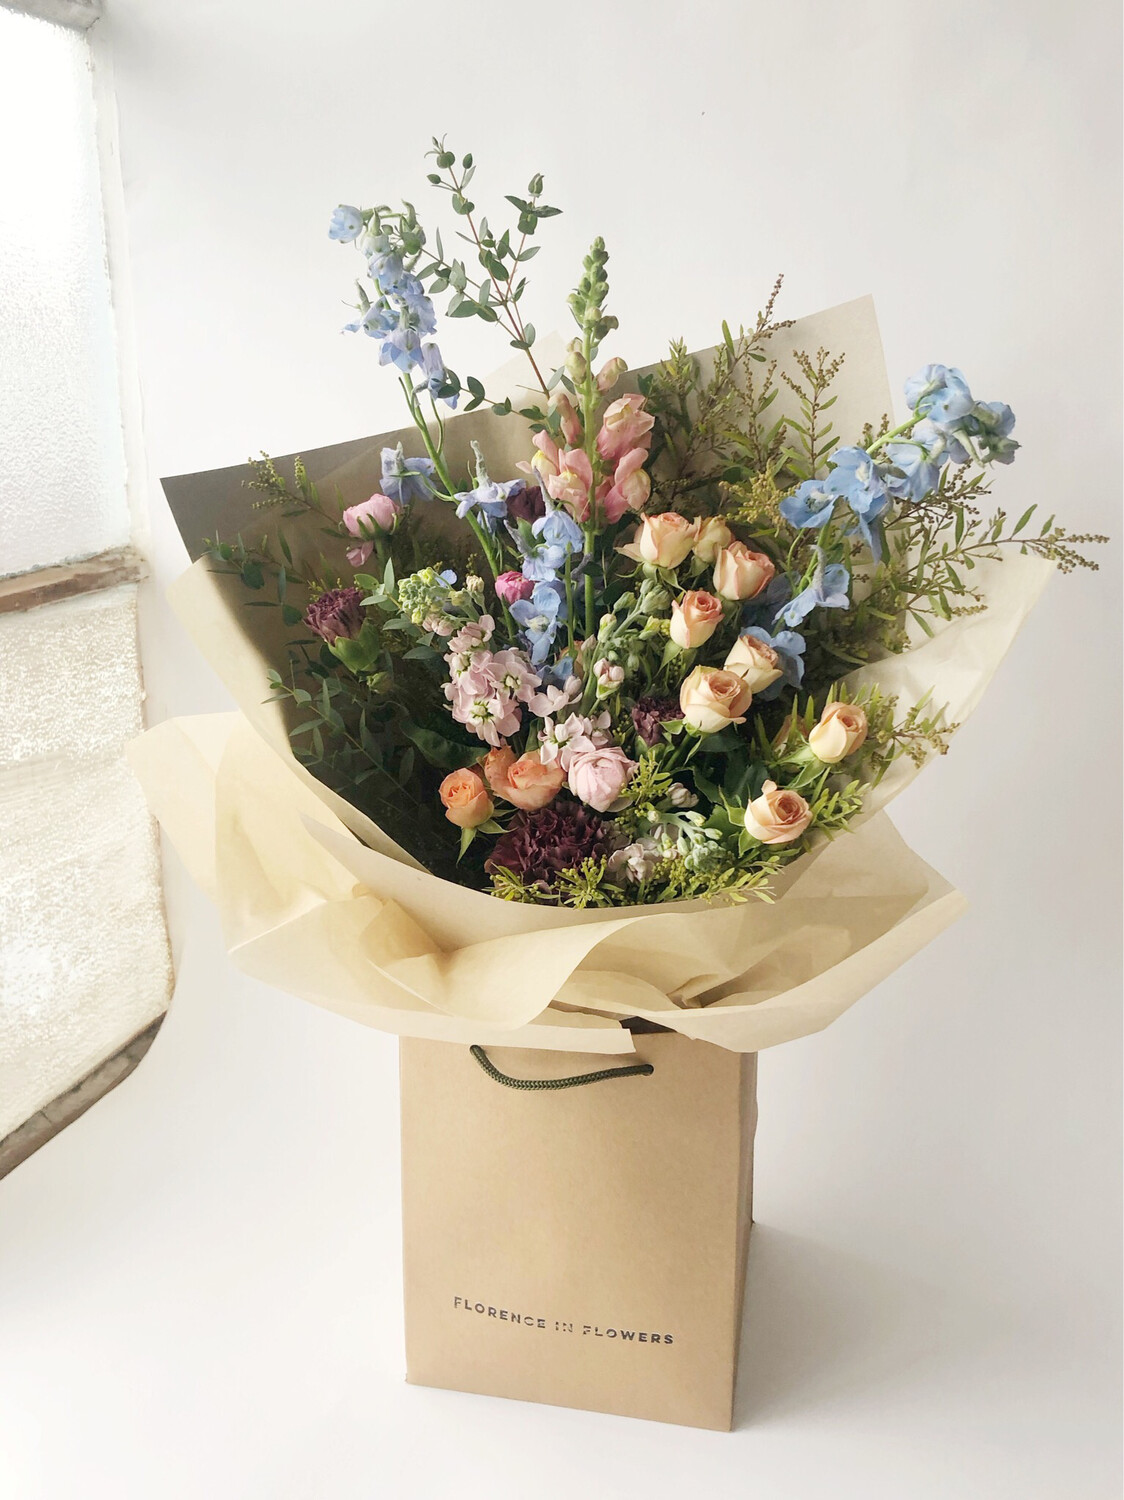 The Flower Subscription